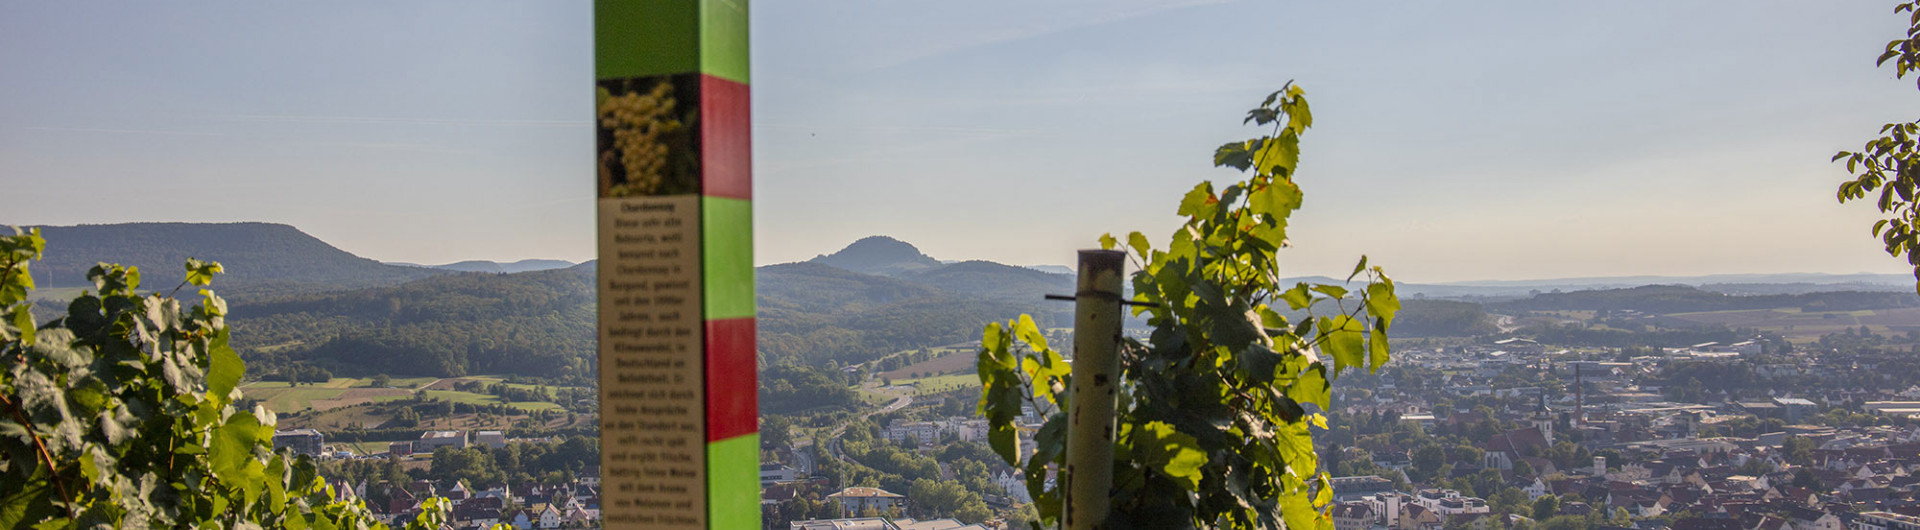 Red and green striped information board on the wine adventure trail with a view of Metzingen and the Swabian Alb